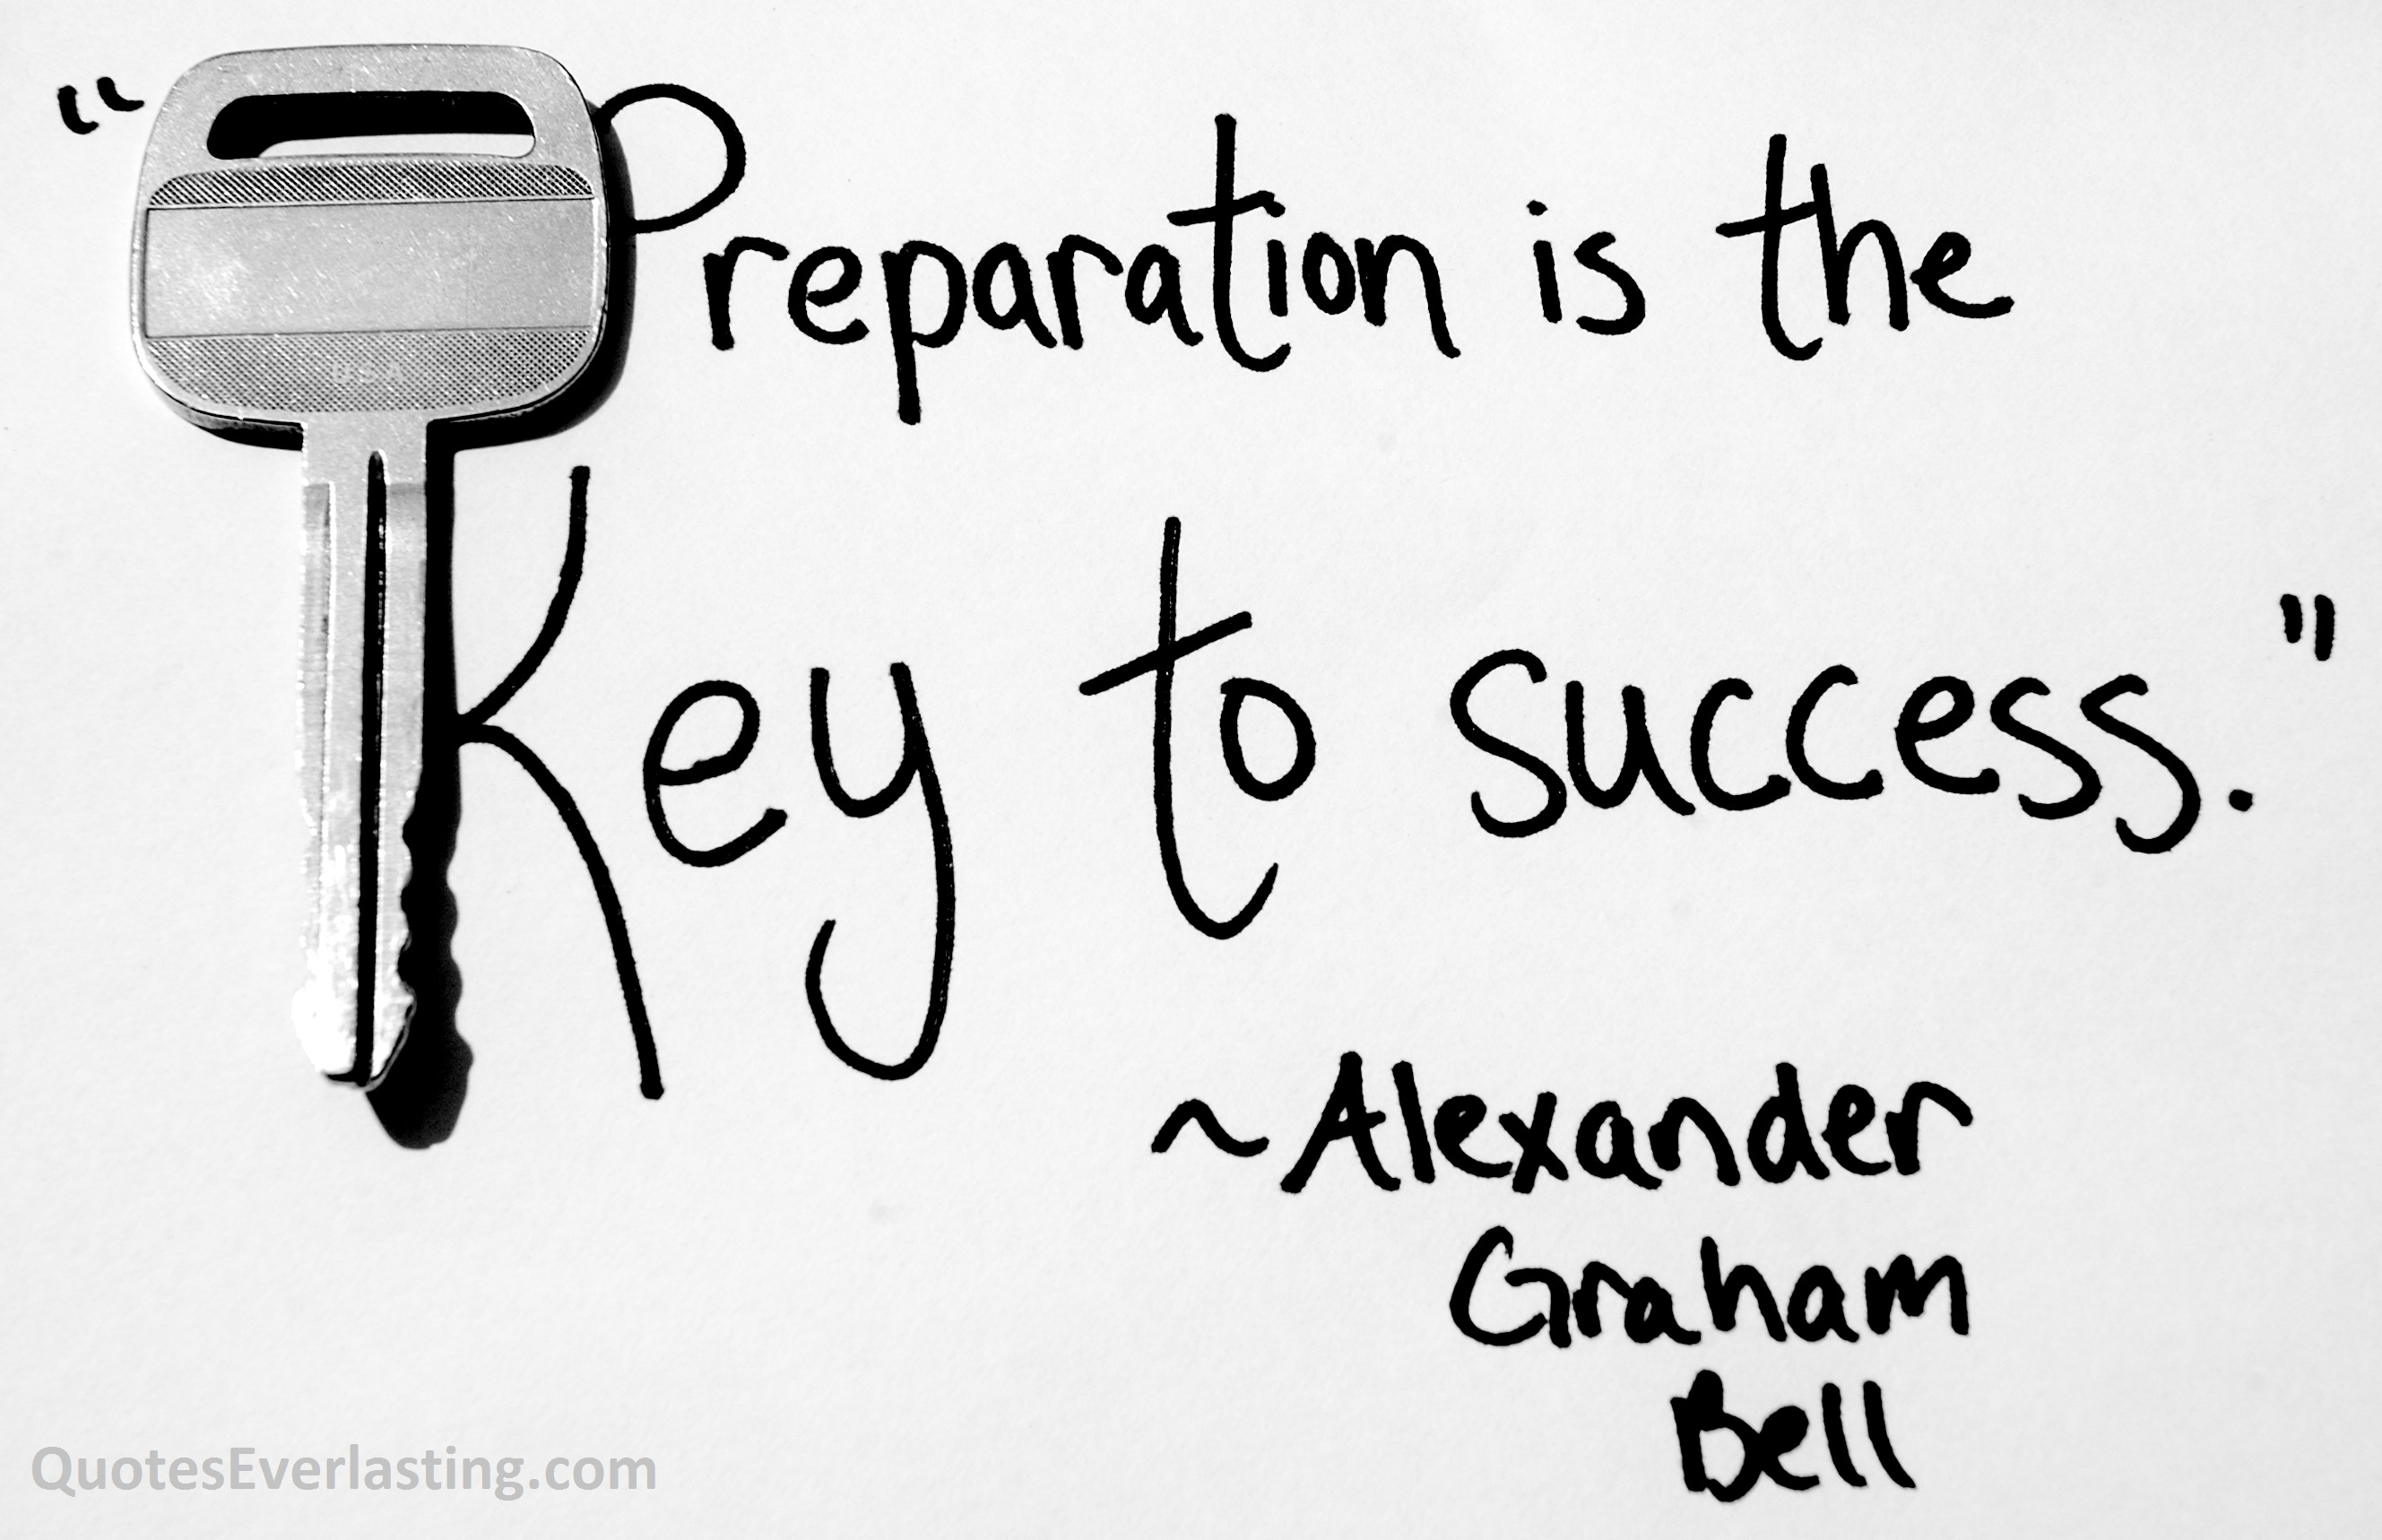 62 beautiful preparation quotes and sayings preparation is the key to success alexander graham bell